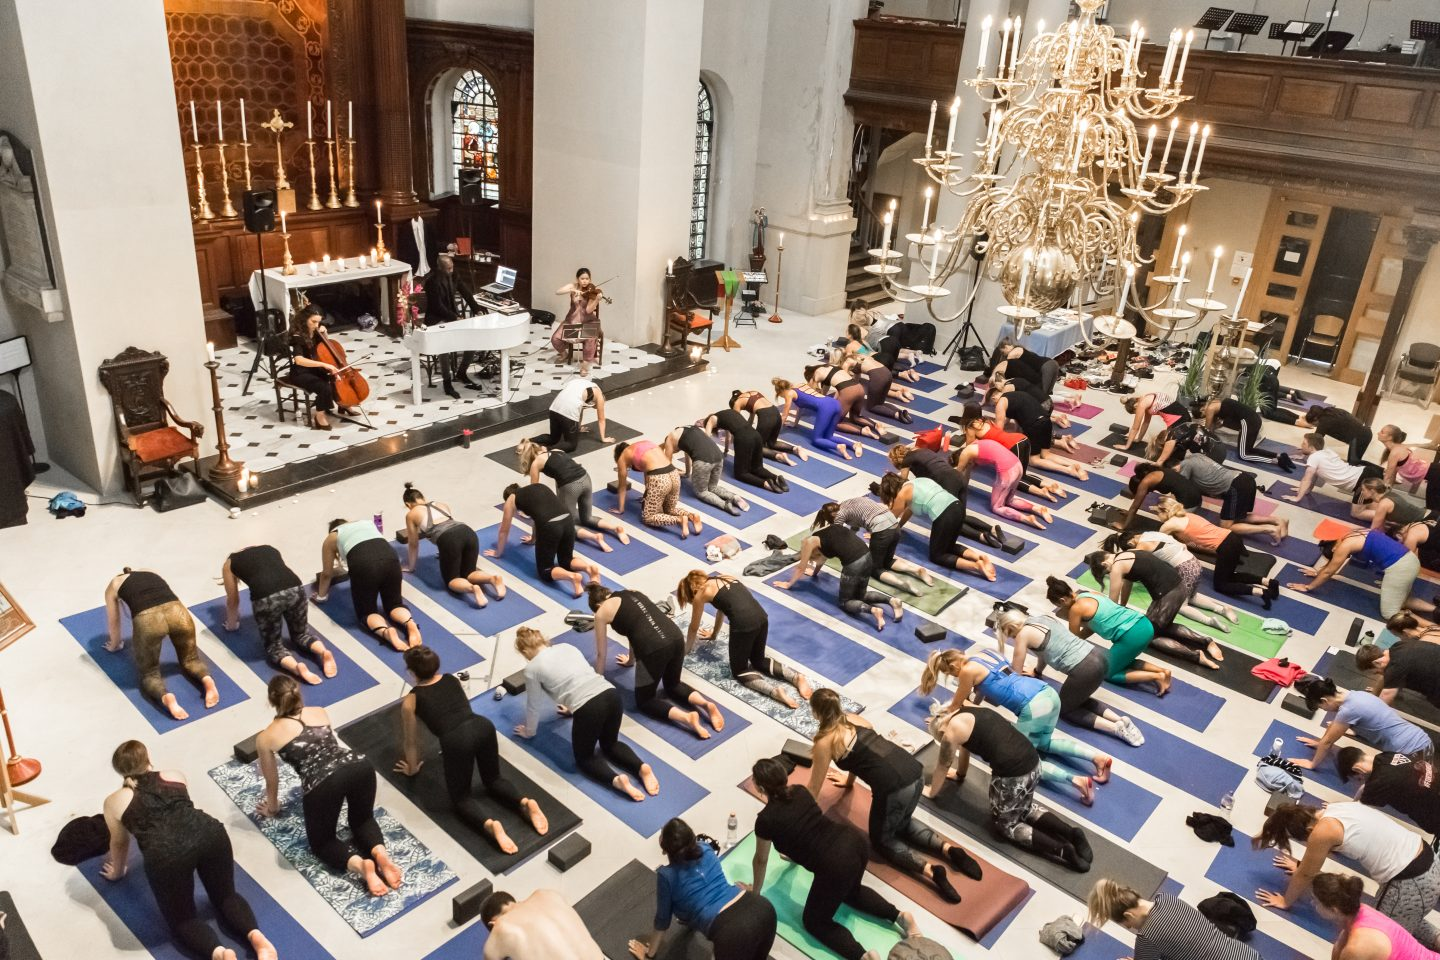 A beautiful church is filled with rows of people doing yoga on mats, accompanied by a live orchestra. Wellness, Gameplan A.